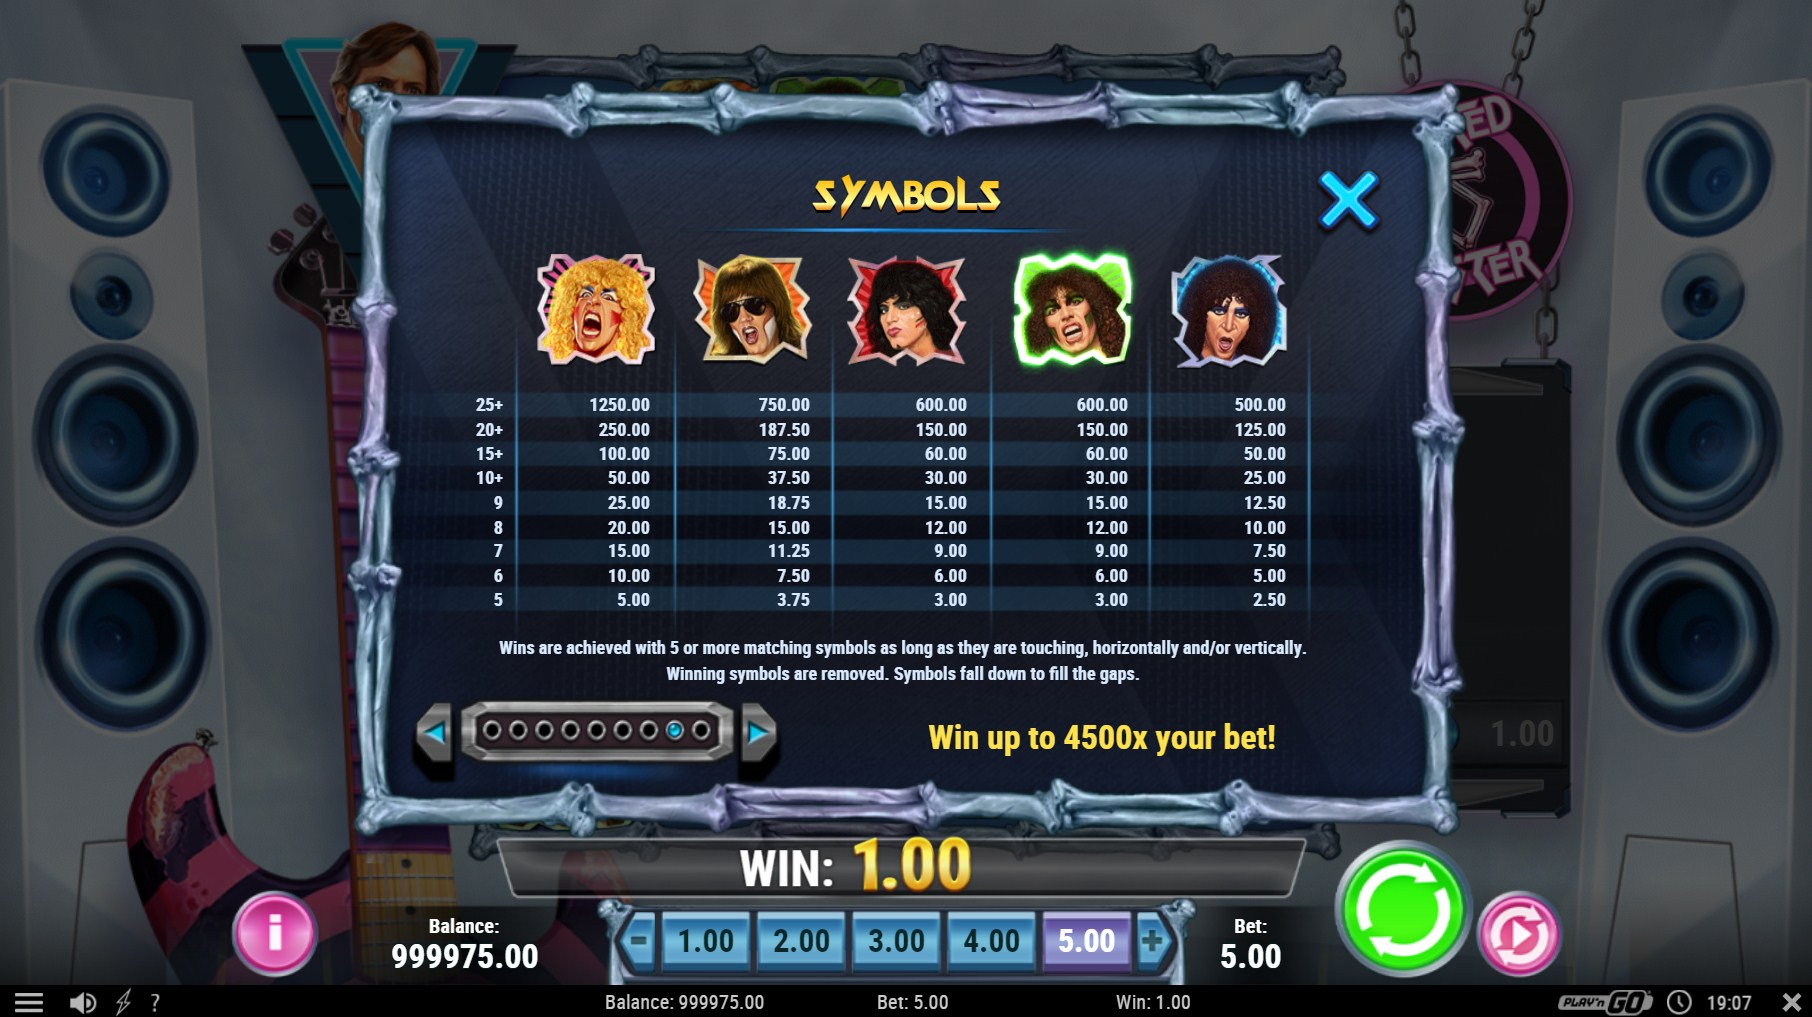 twisted-sister-slot-paytable